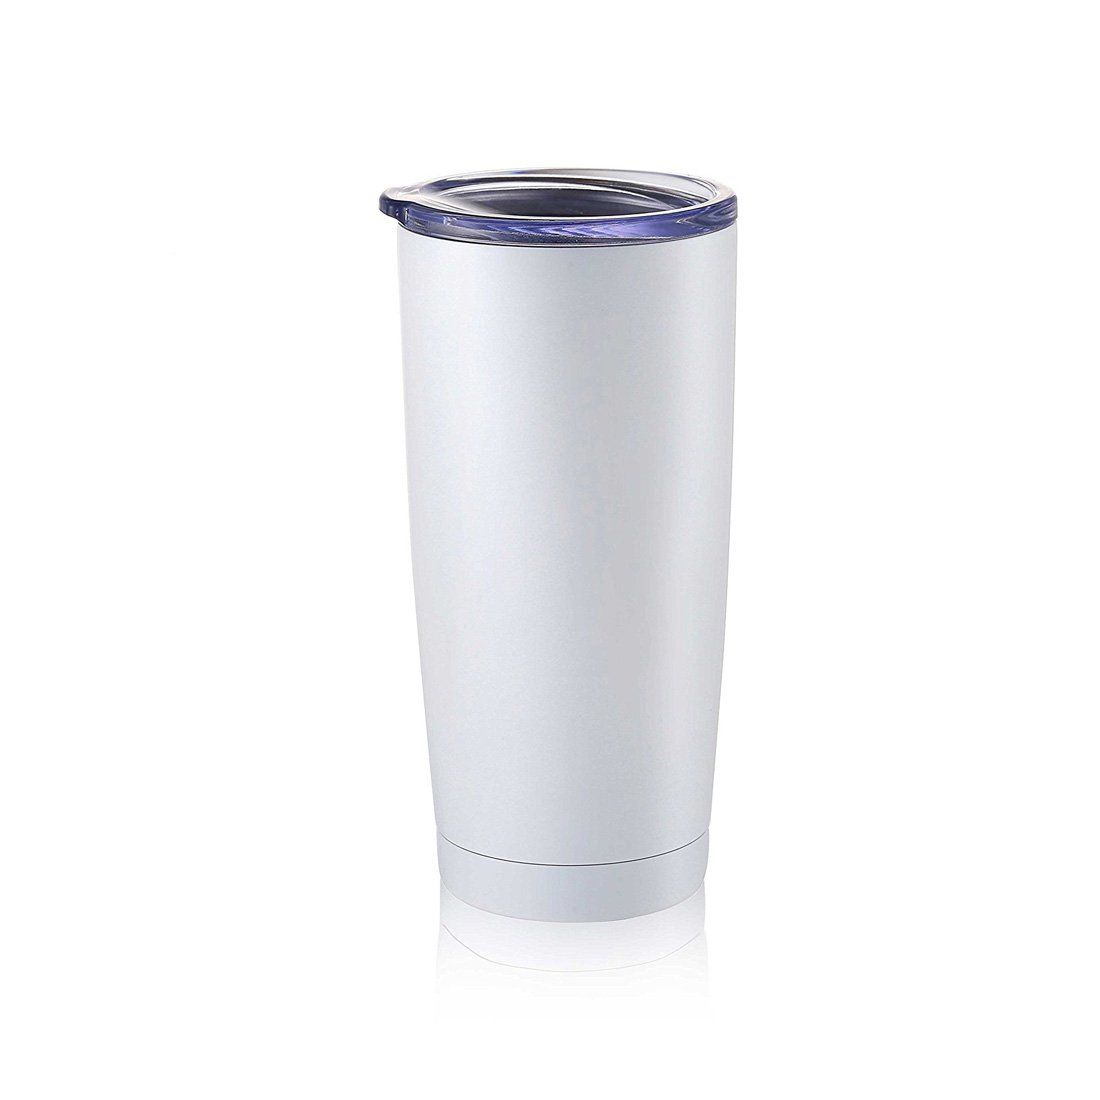 Masvis 20oz Tumbler Vacuum Insulated Stainless Steel Coffee Cup with Lid, Straws - Travel Mug Works Great for Ice Drink, Hot Beverage(White)